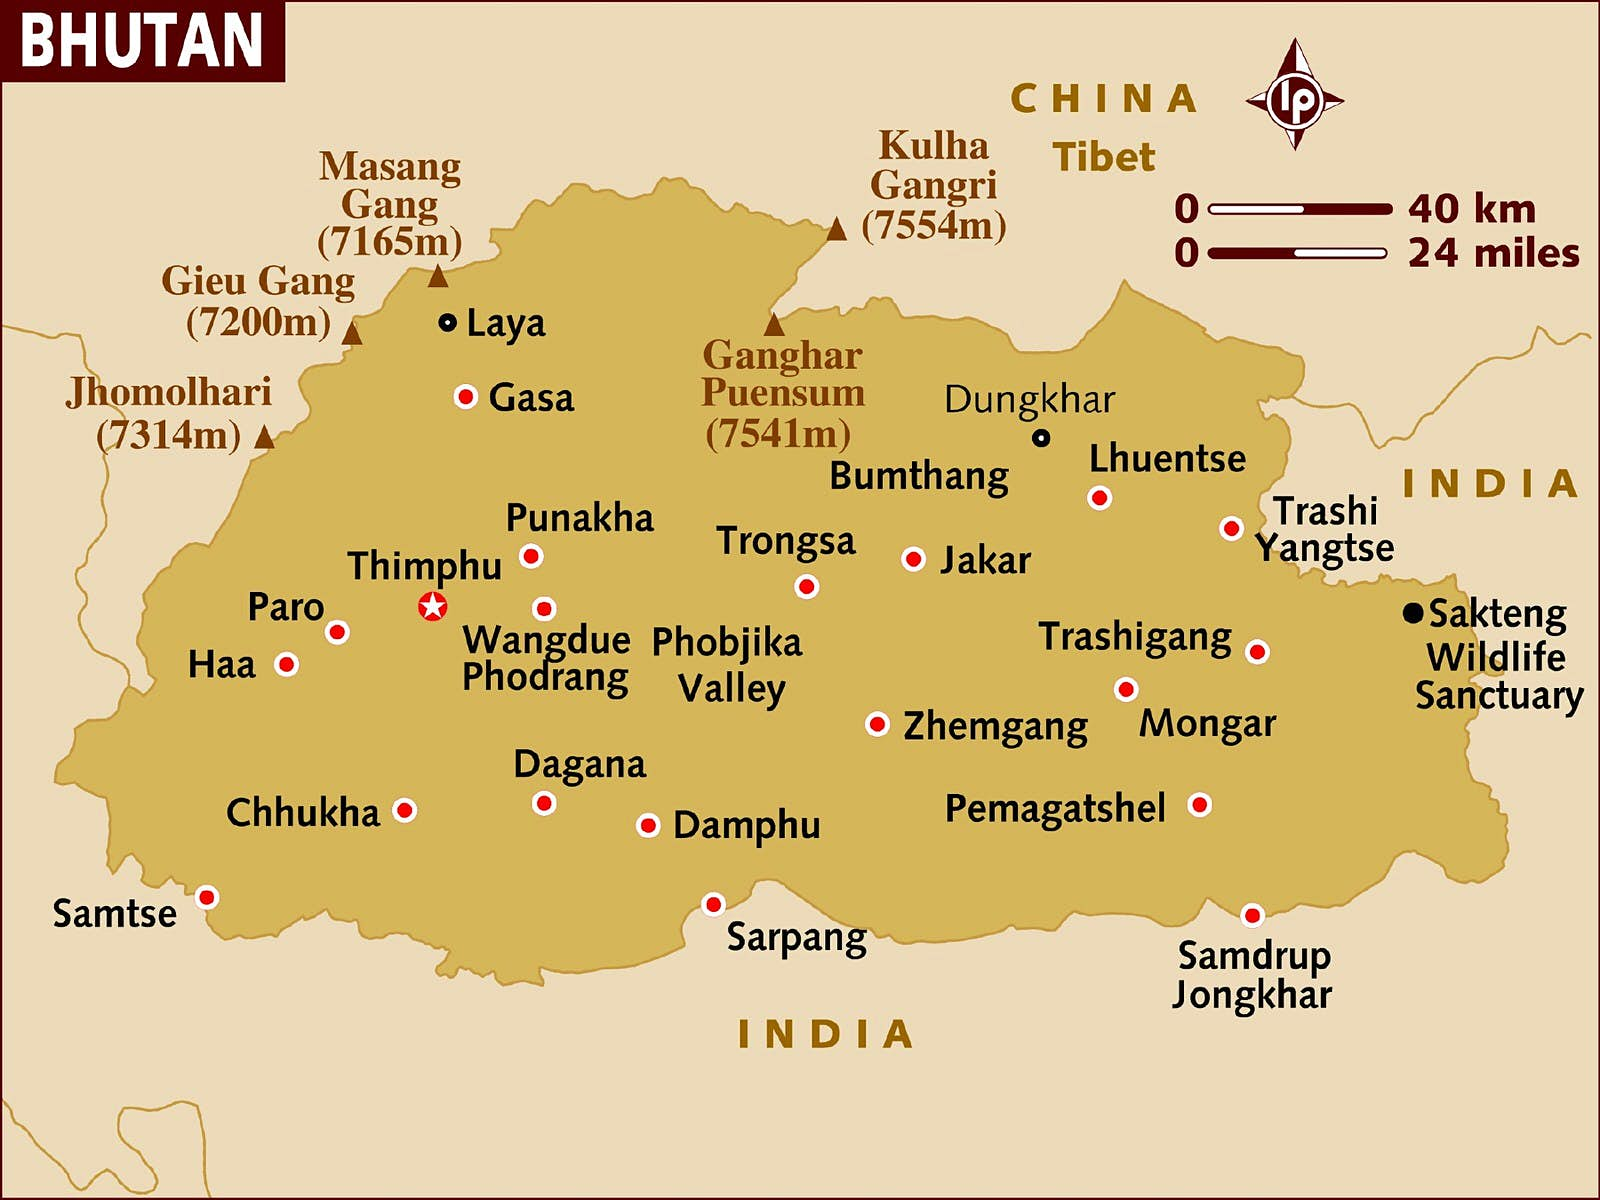 A Lonely Planet map of Bhutan showing major towns, villages, mountains and wildlife sanctuaries.